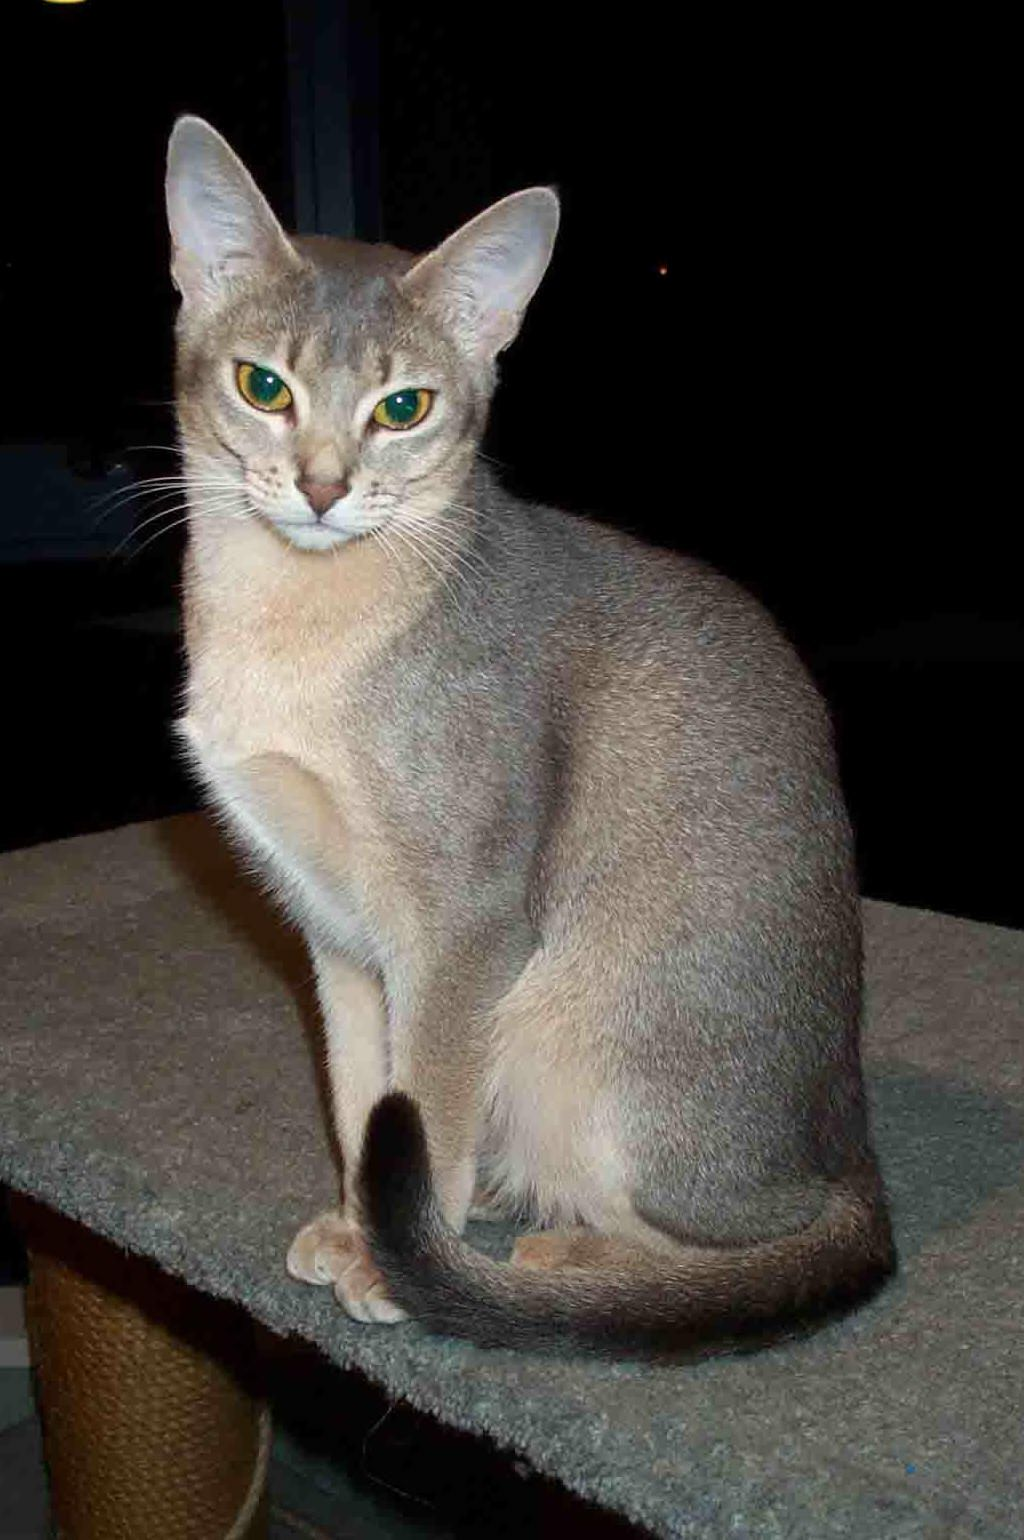 Owning an abyssinian cat